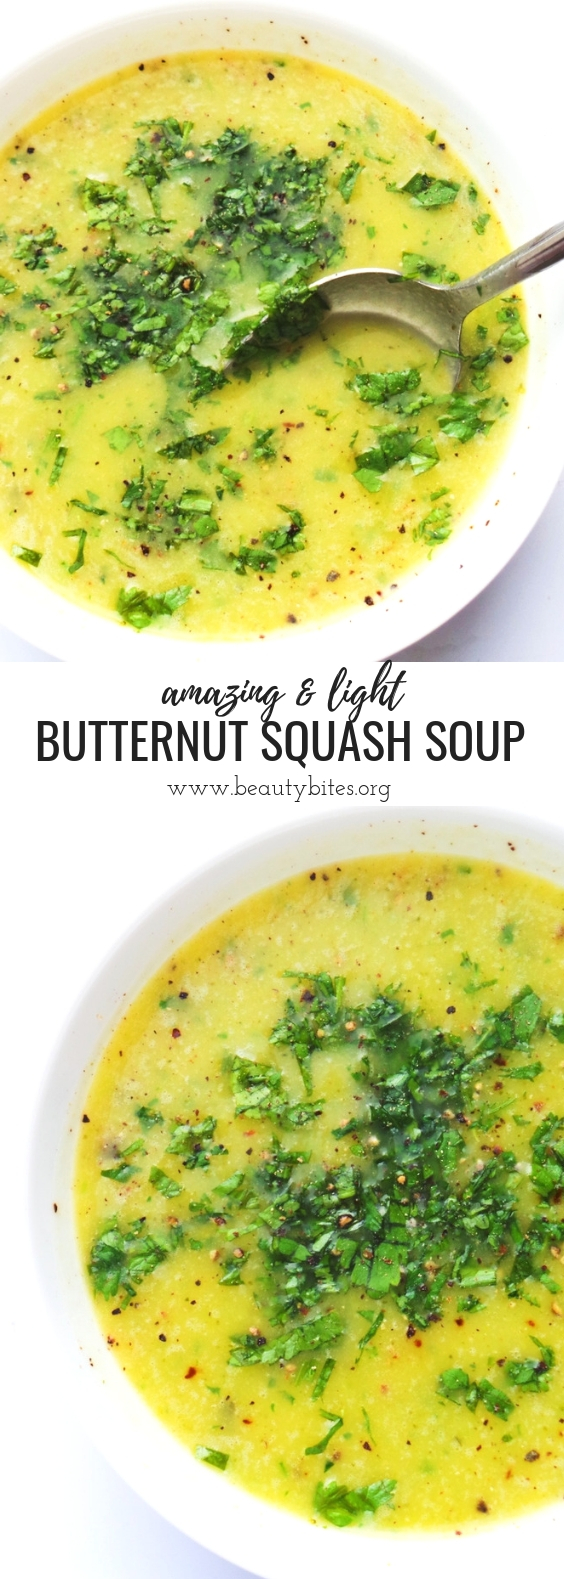 Delicious healthy soup recipe with butternut squash and broccoli! Light, yummy and super easy to make for dinner tonight! This butternut squash and broccoli soup is paleo, vegan and gluten-free!